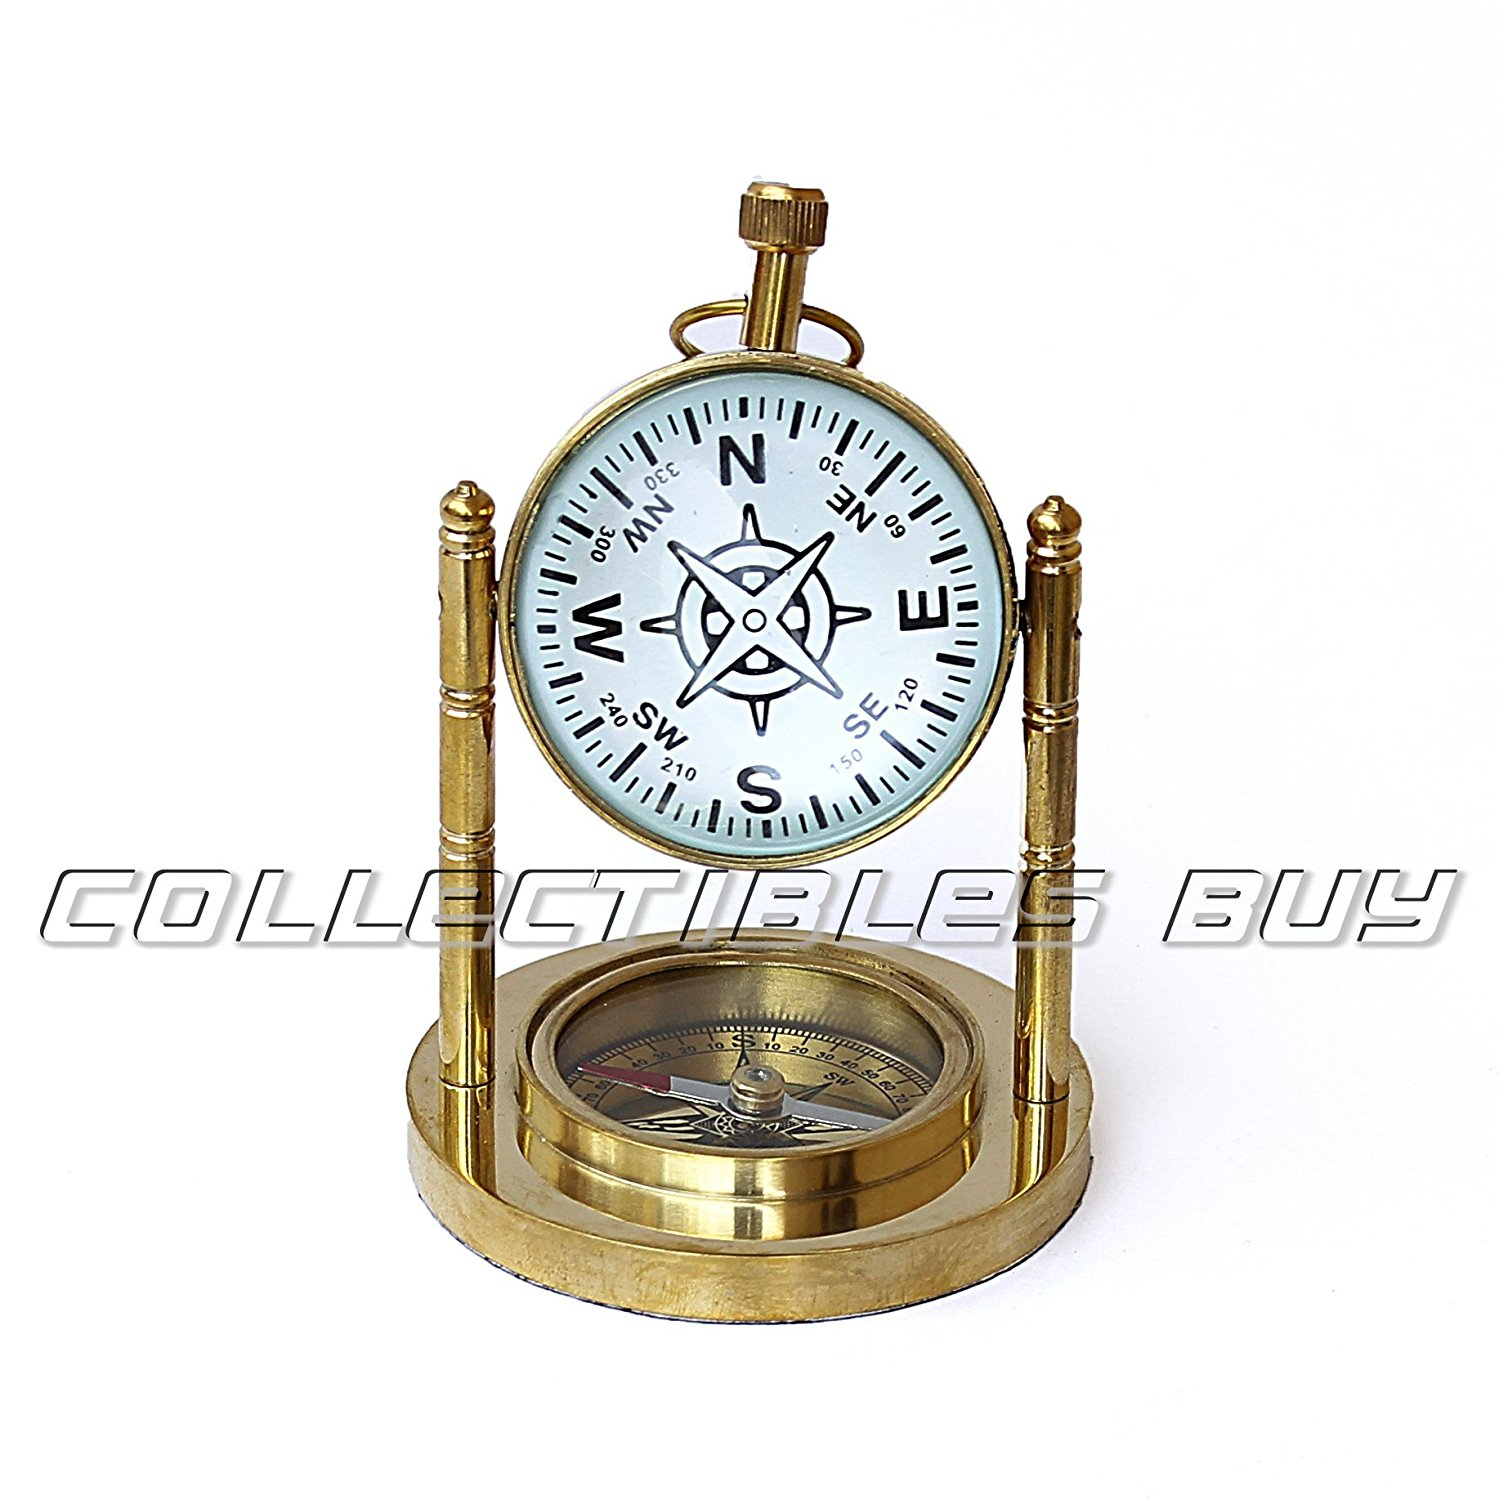 Nautical Compass With Marine Antique Desk Clock Vintage Collection study table clock and compass Vintage Ornament Movie prop